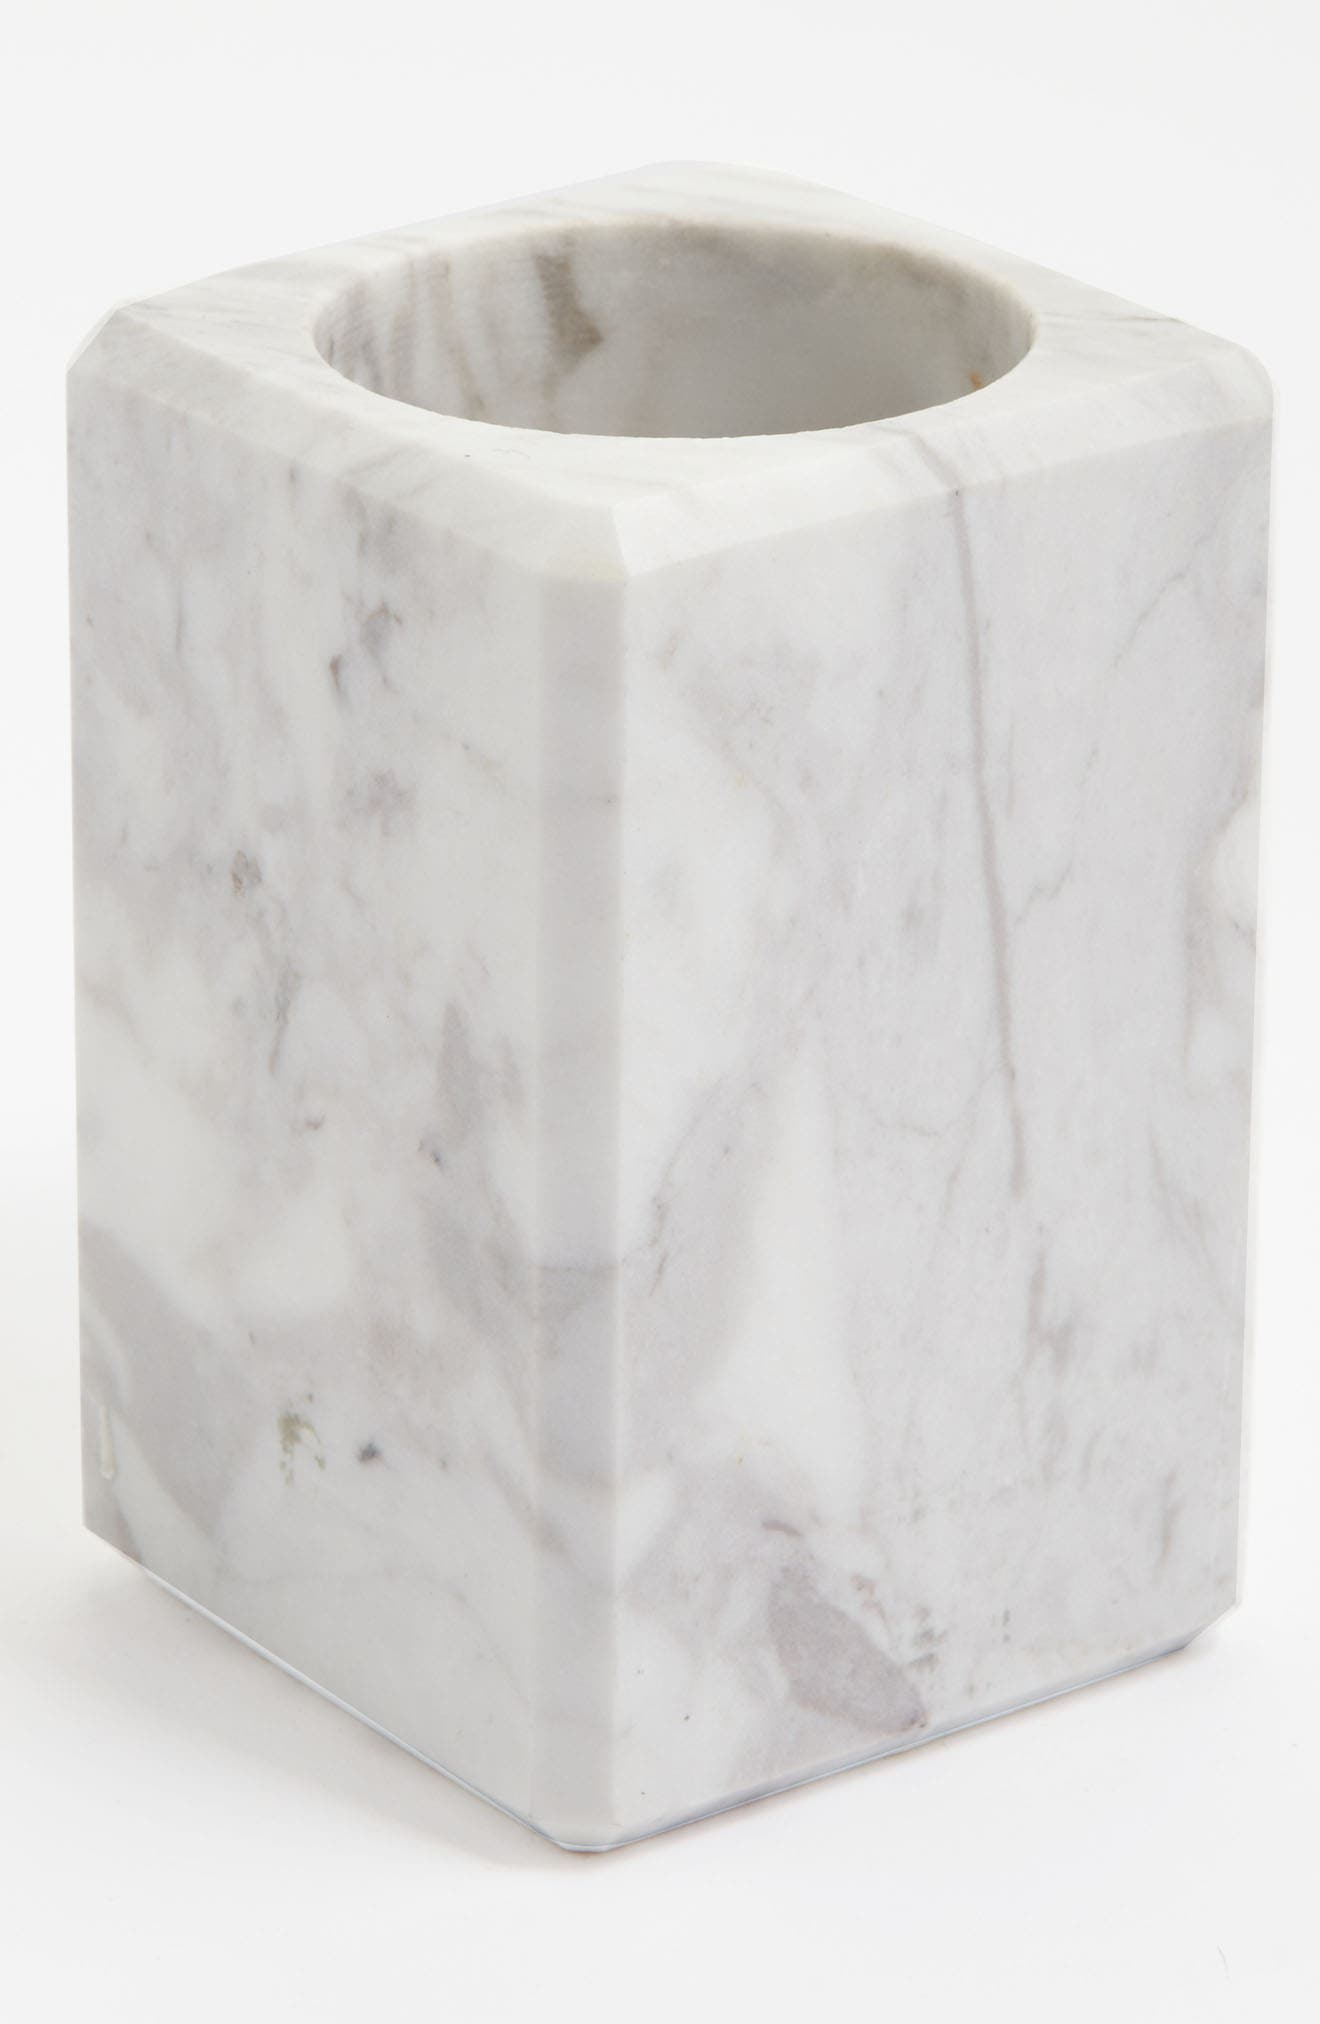 Studio 'Luna' White Marble Tumbler,                             Main thumbnail 1, color,                             WHITE